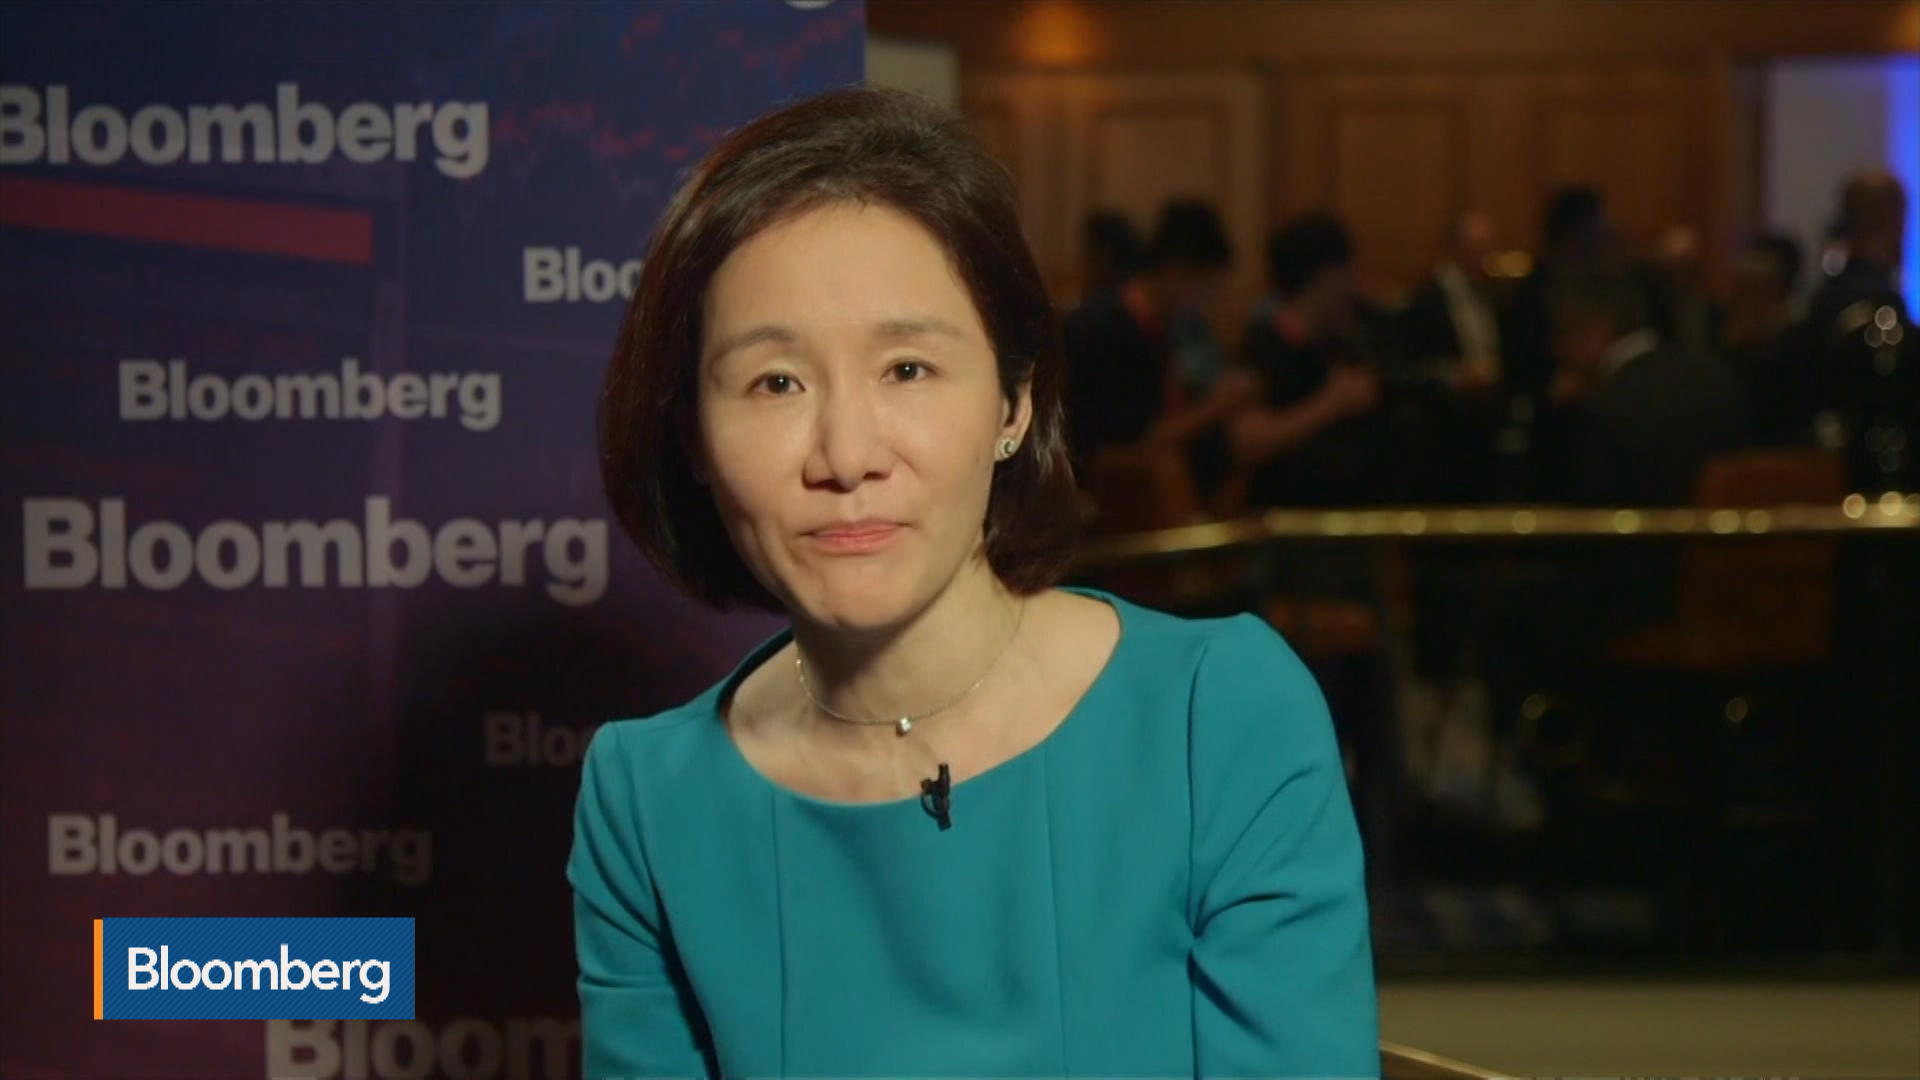 CreditEase Senior VP Zhang Yue on China Credit Demand, P2P Lending, Expansion Plans